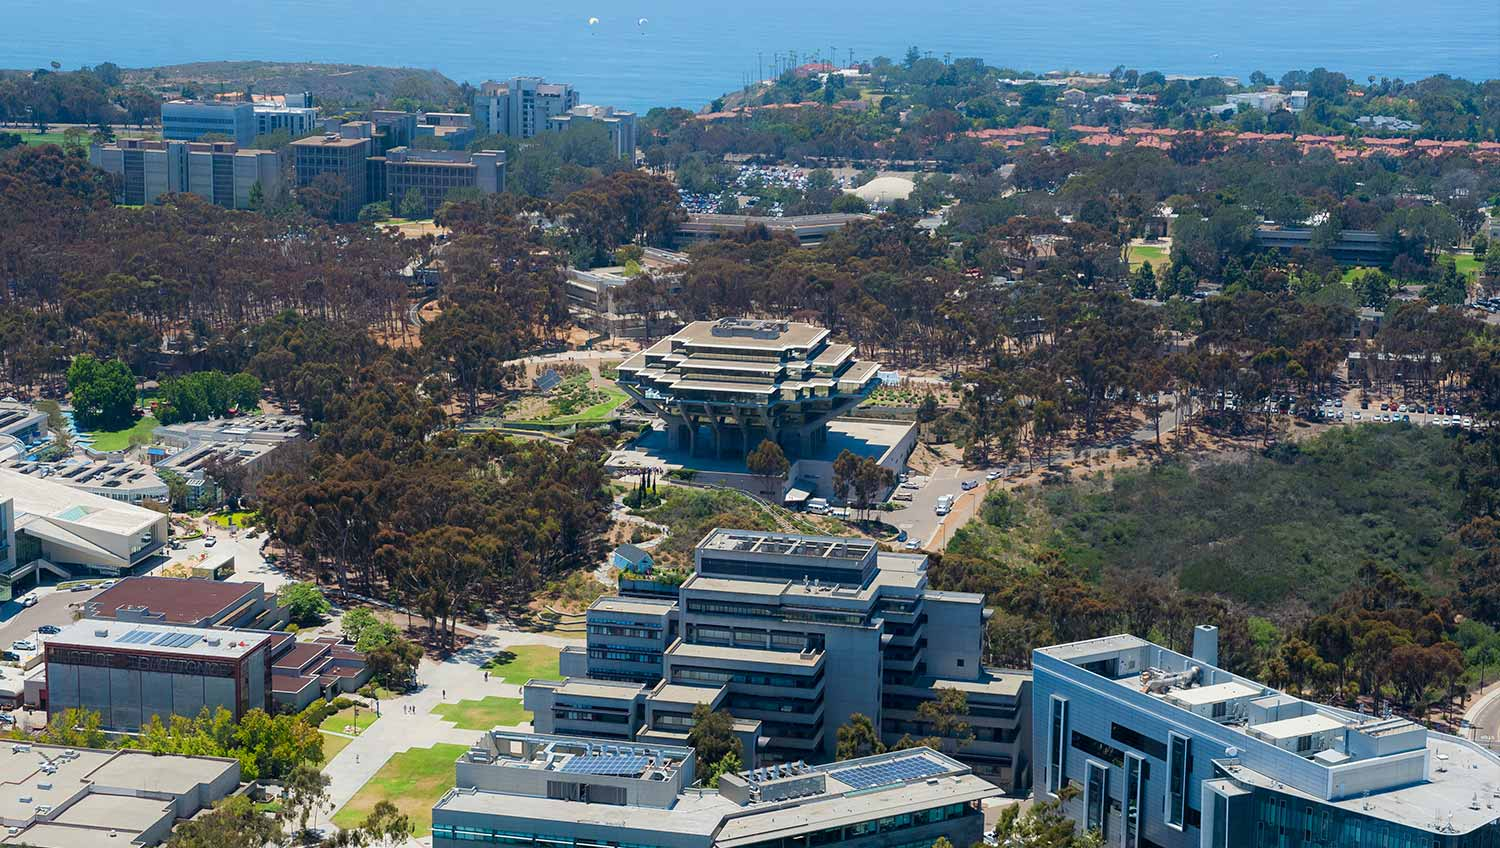 Image: The University of California San Diego